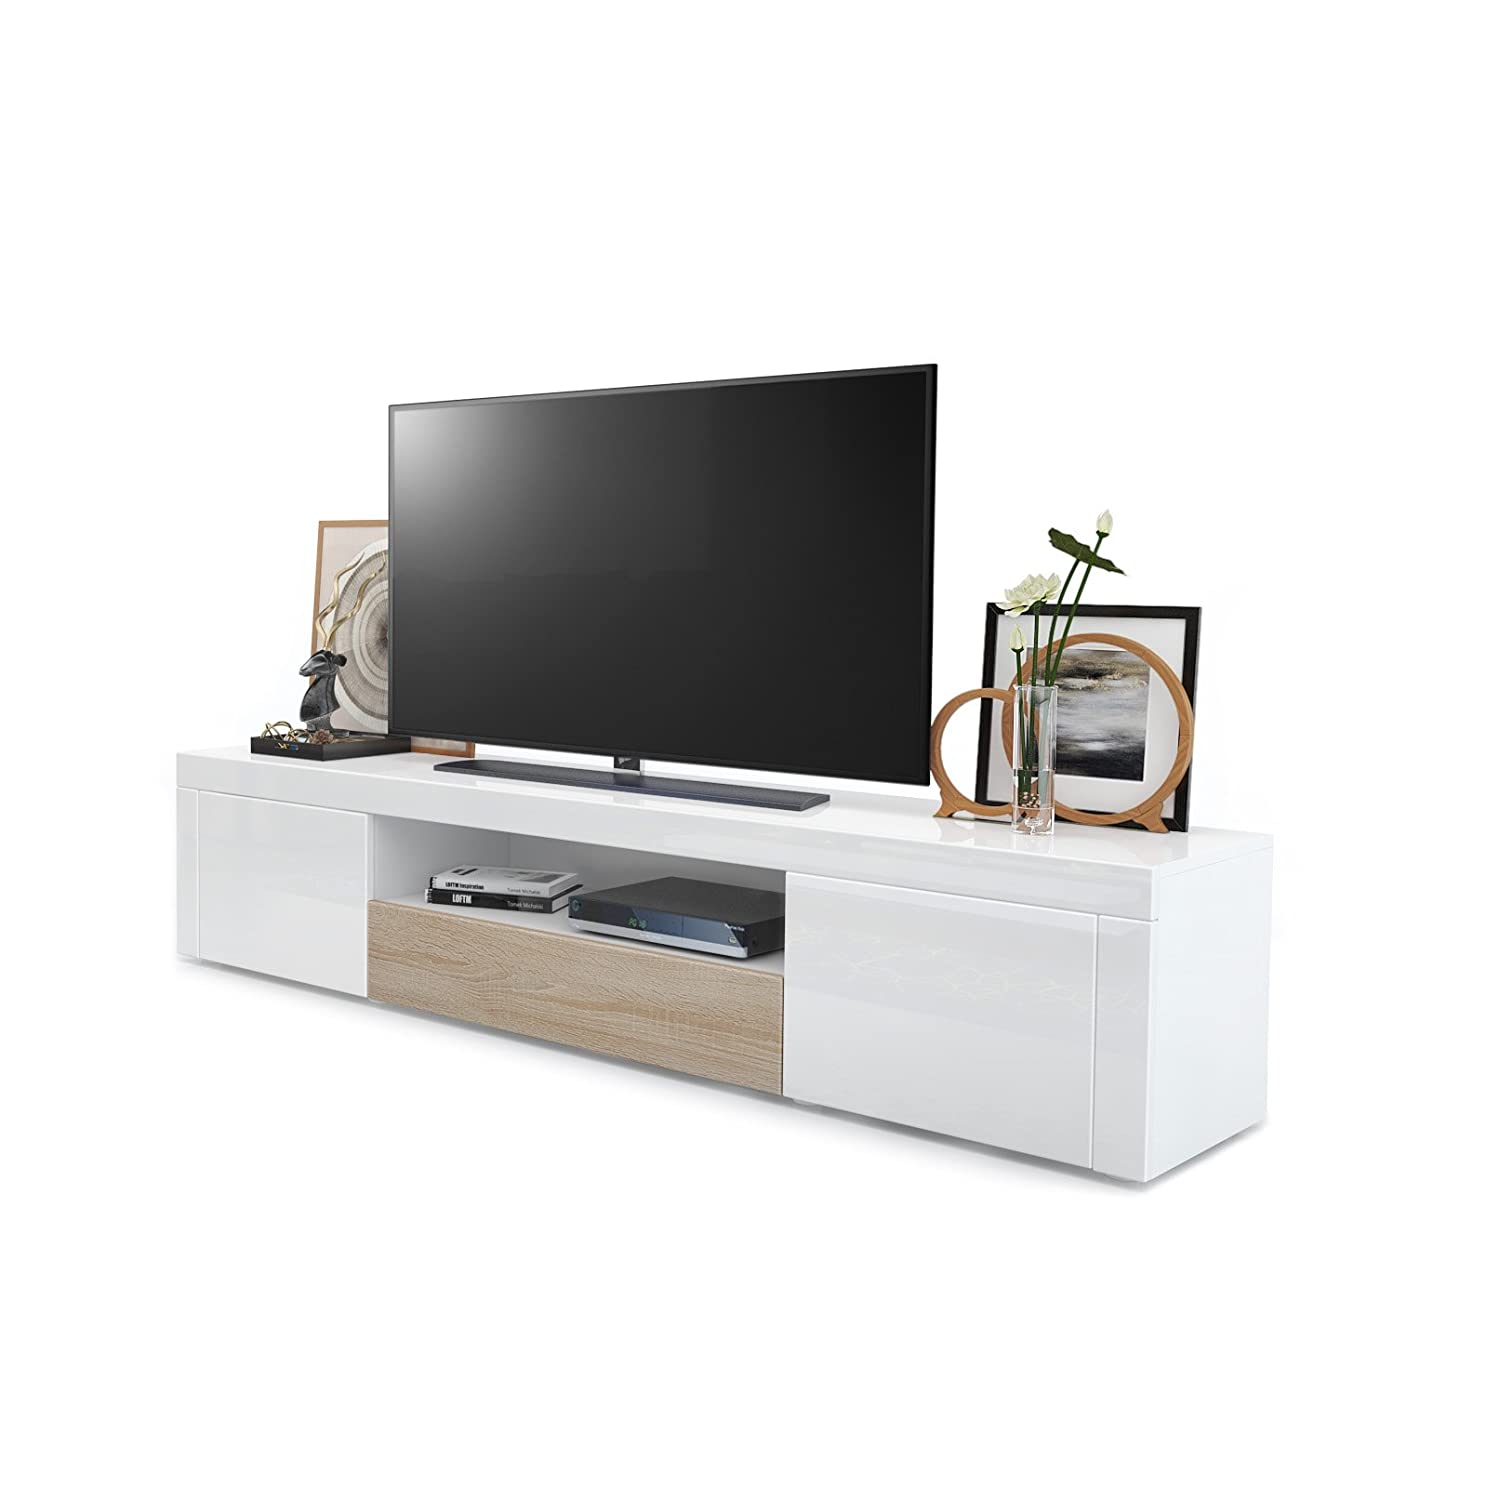 White High Gloss   Rough-sawn Oak without LED lighting Vladon TV Unit Stand Santiago, Carcass in White High Gloss Front in White High Gloss and Avola-Anthracite